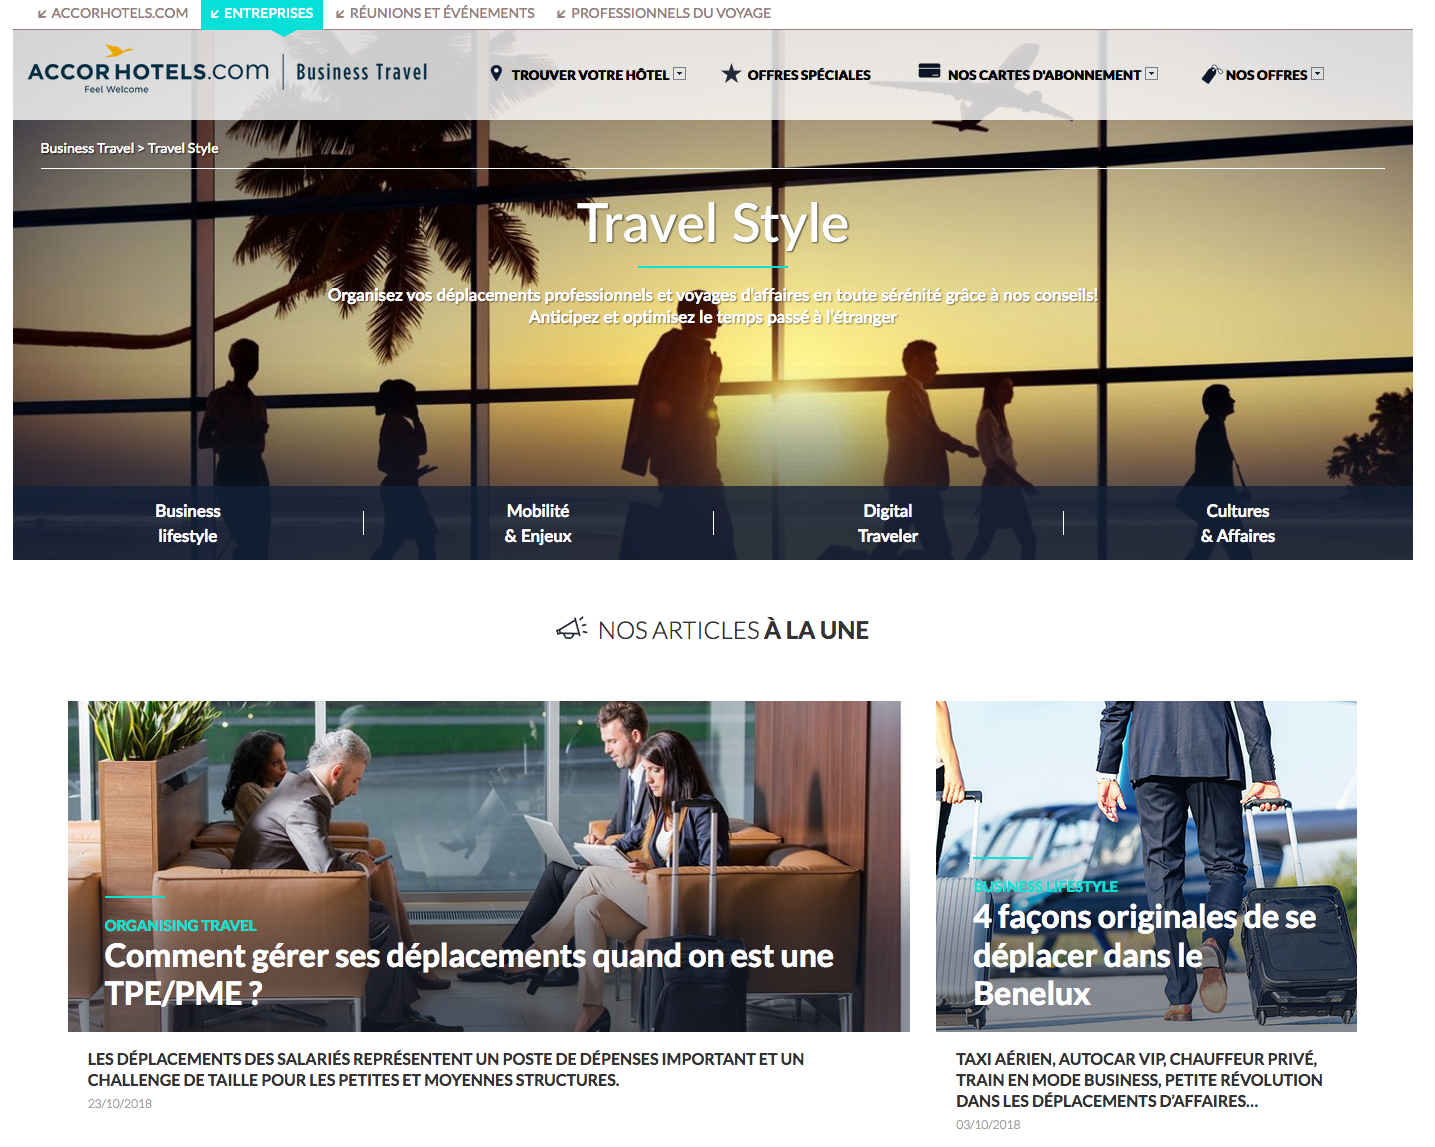 blog voyages affaires Accorhotels